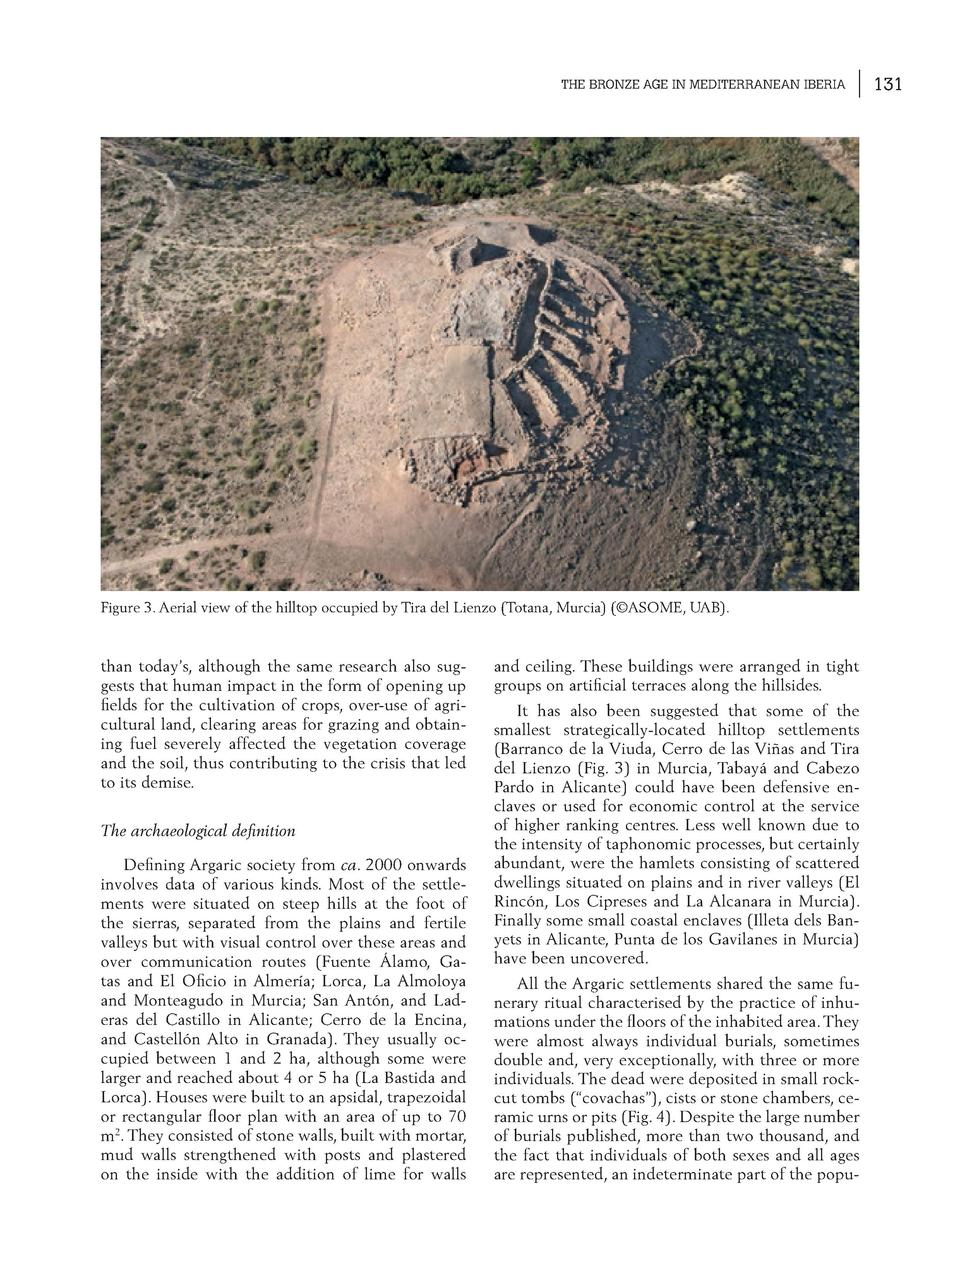 THE BRONZE AGE IN MEDITERRANEAN IBERIA  Figure 3. Aerial view of the hilltop occupied by Tira del Lienzo  Totana, Murcia  ...